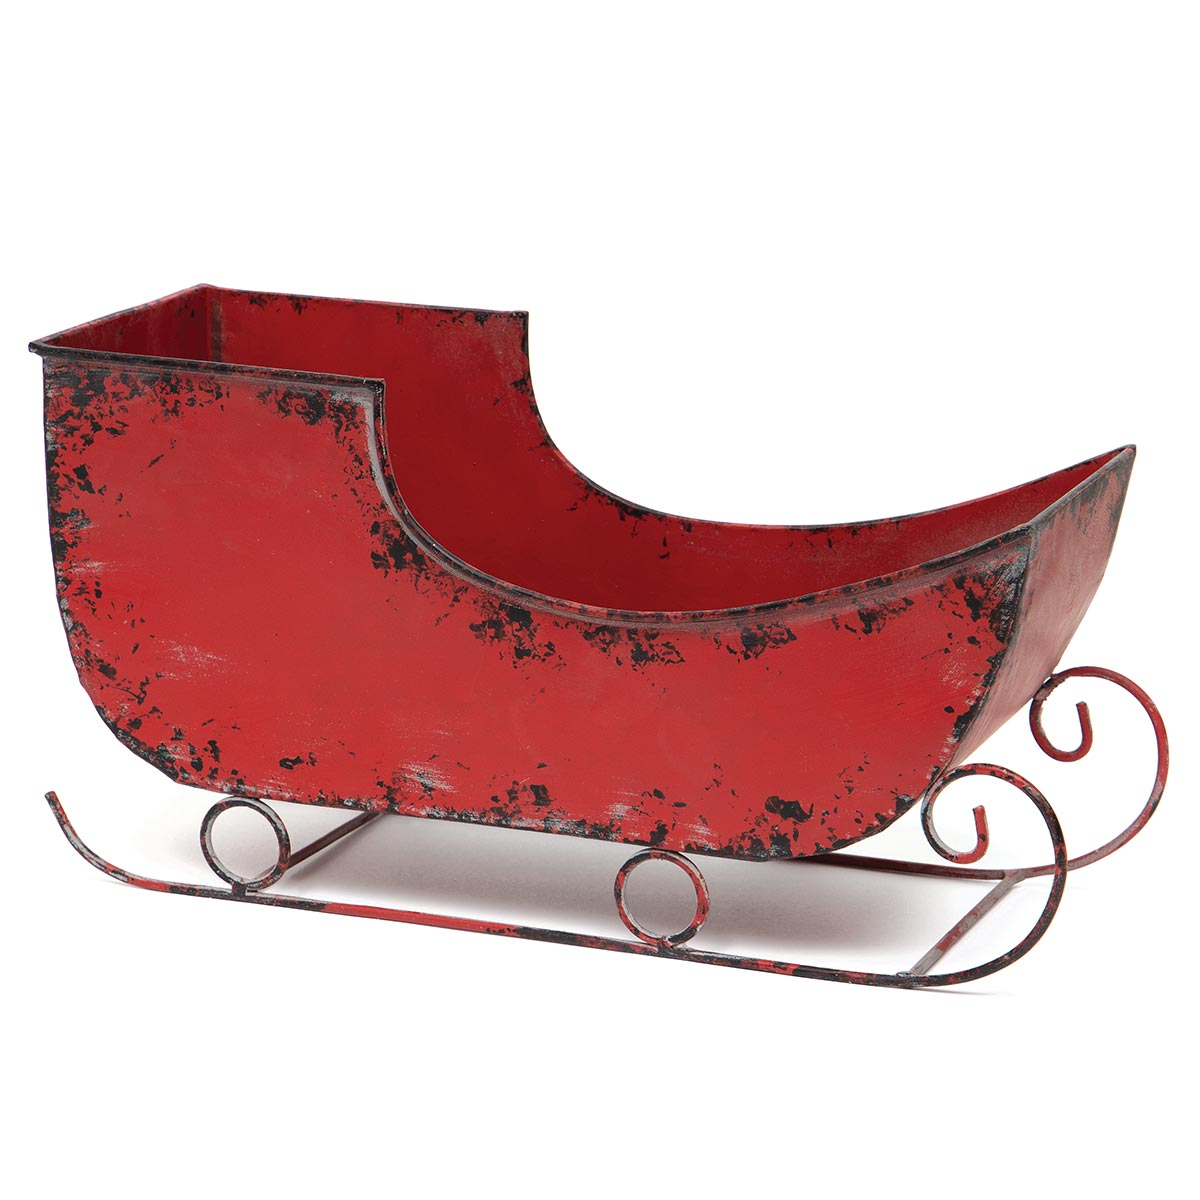 "ANTIQUE METAL SLEIGH RED 14.5""X5""X7.5"""